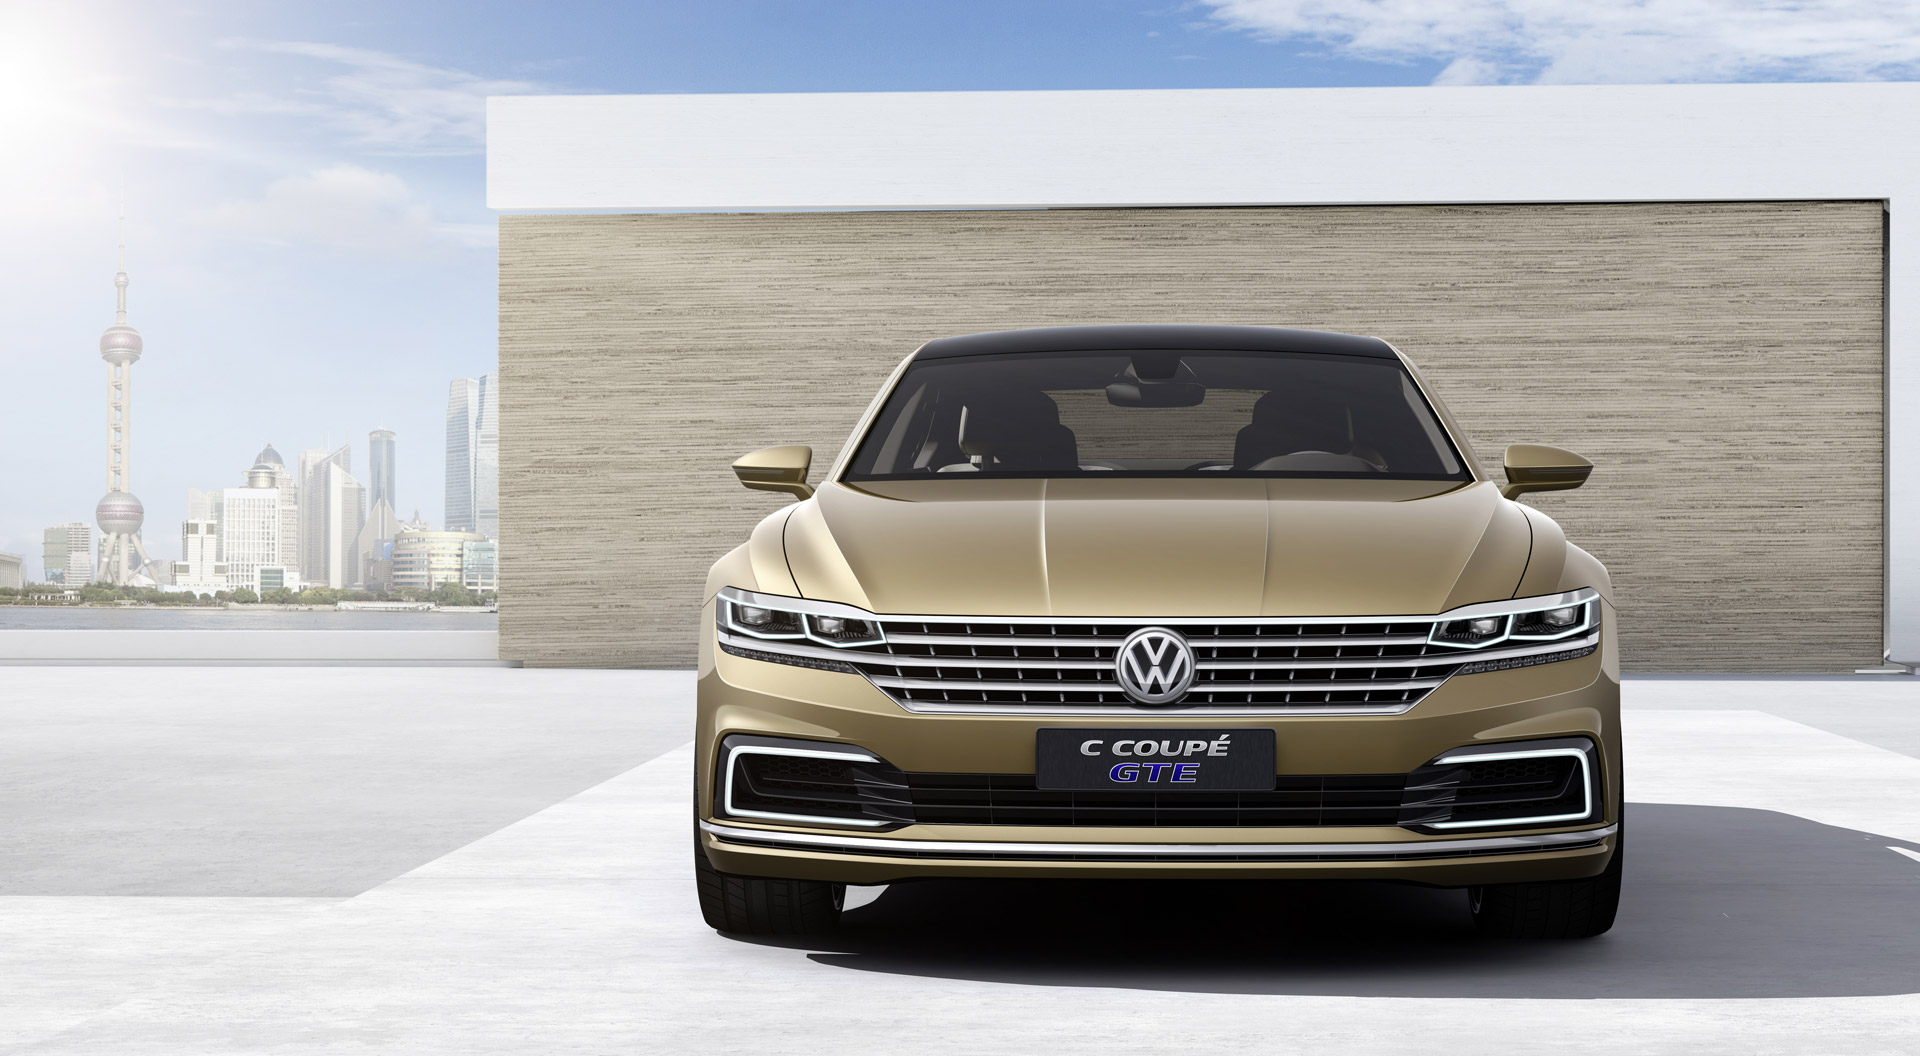 Next Gen Volkswagen Phaeton S Design Previewed By C Coupe Gte Concept